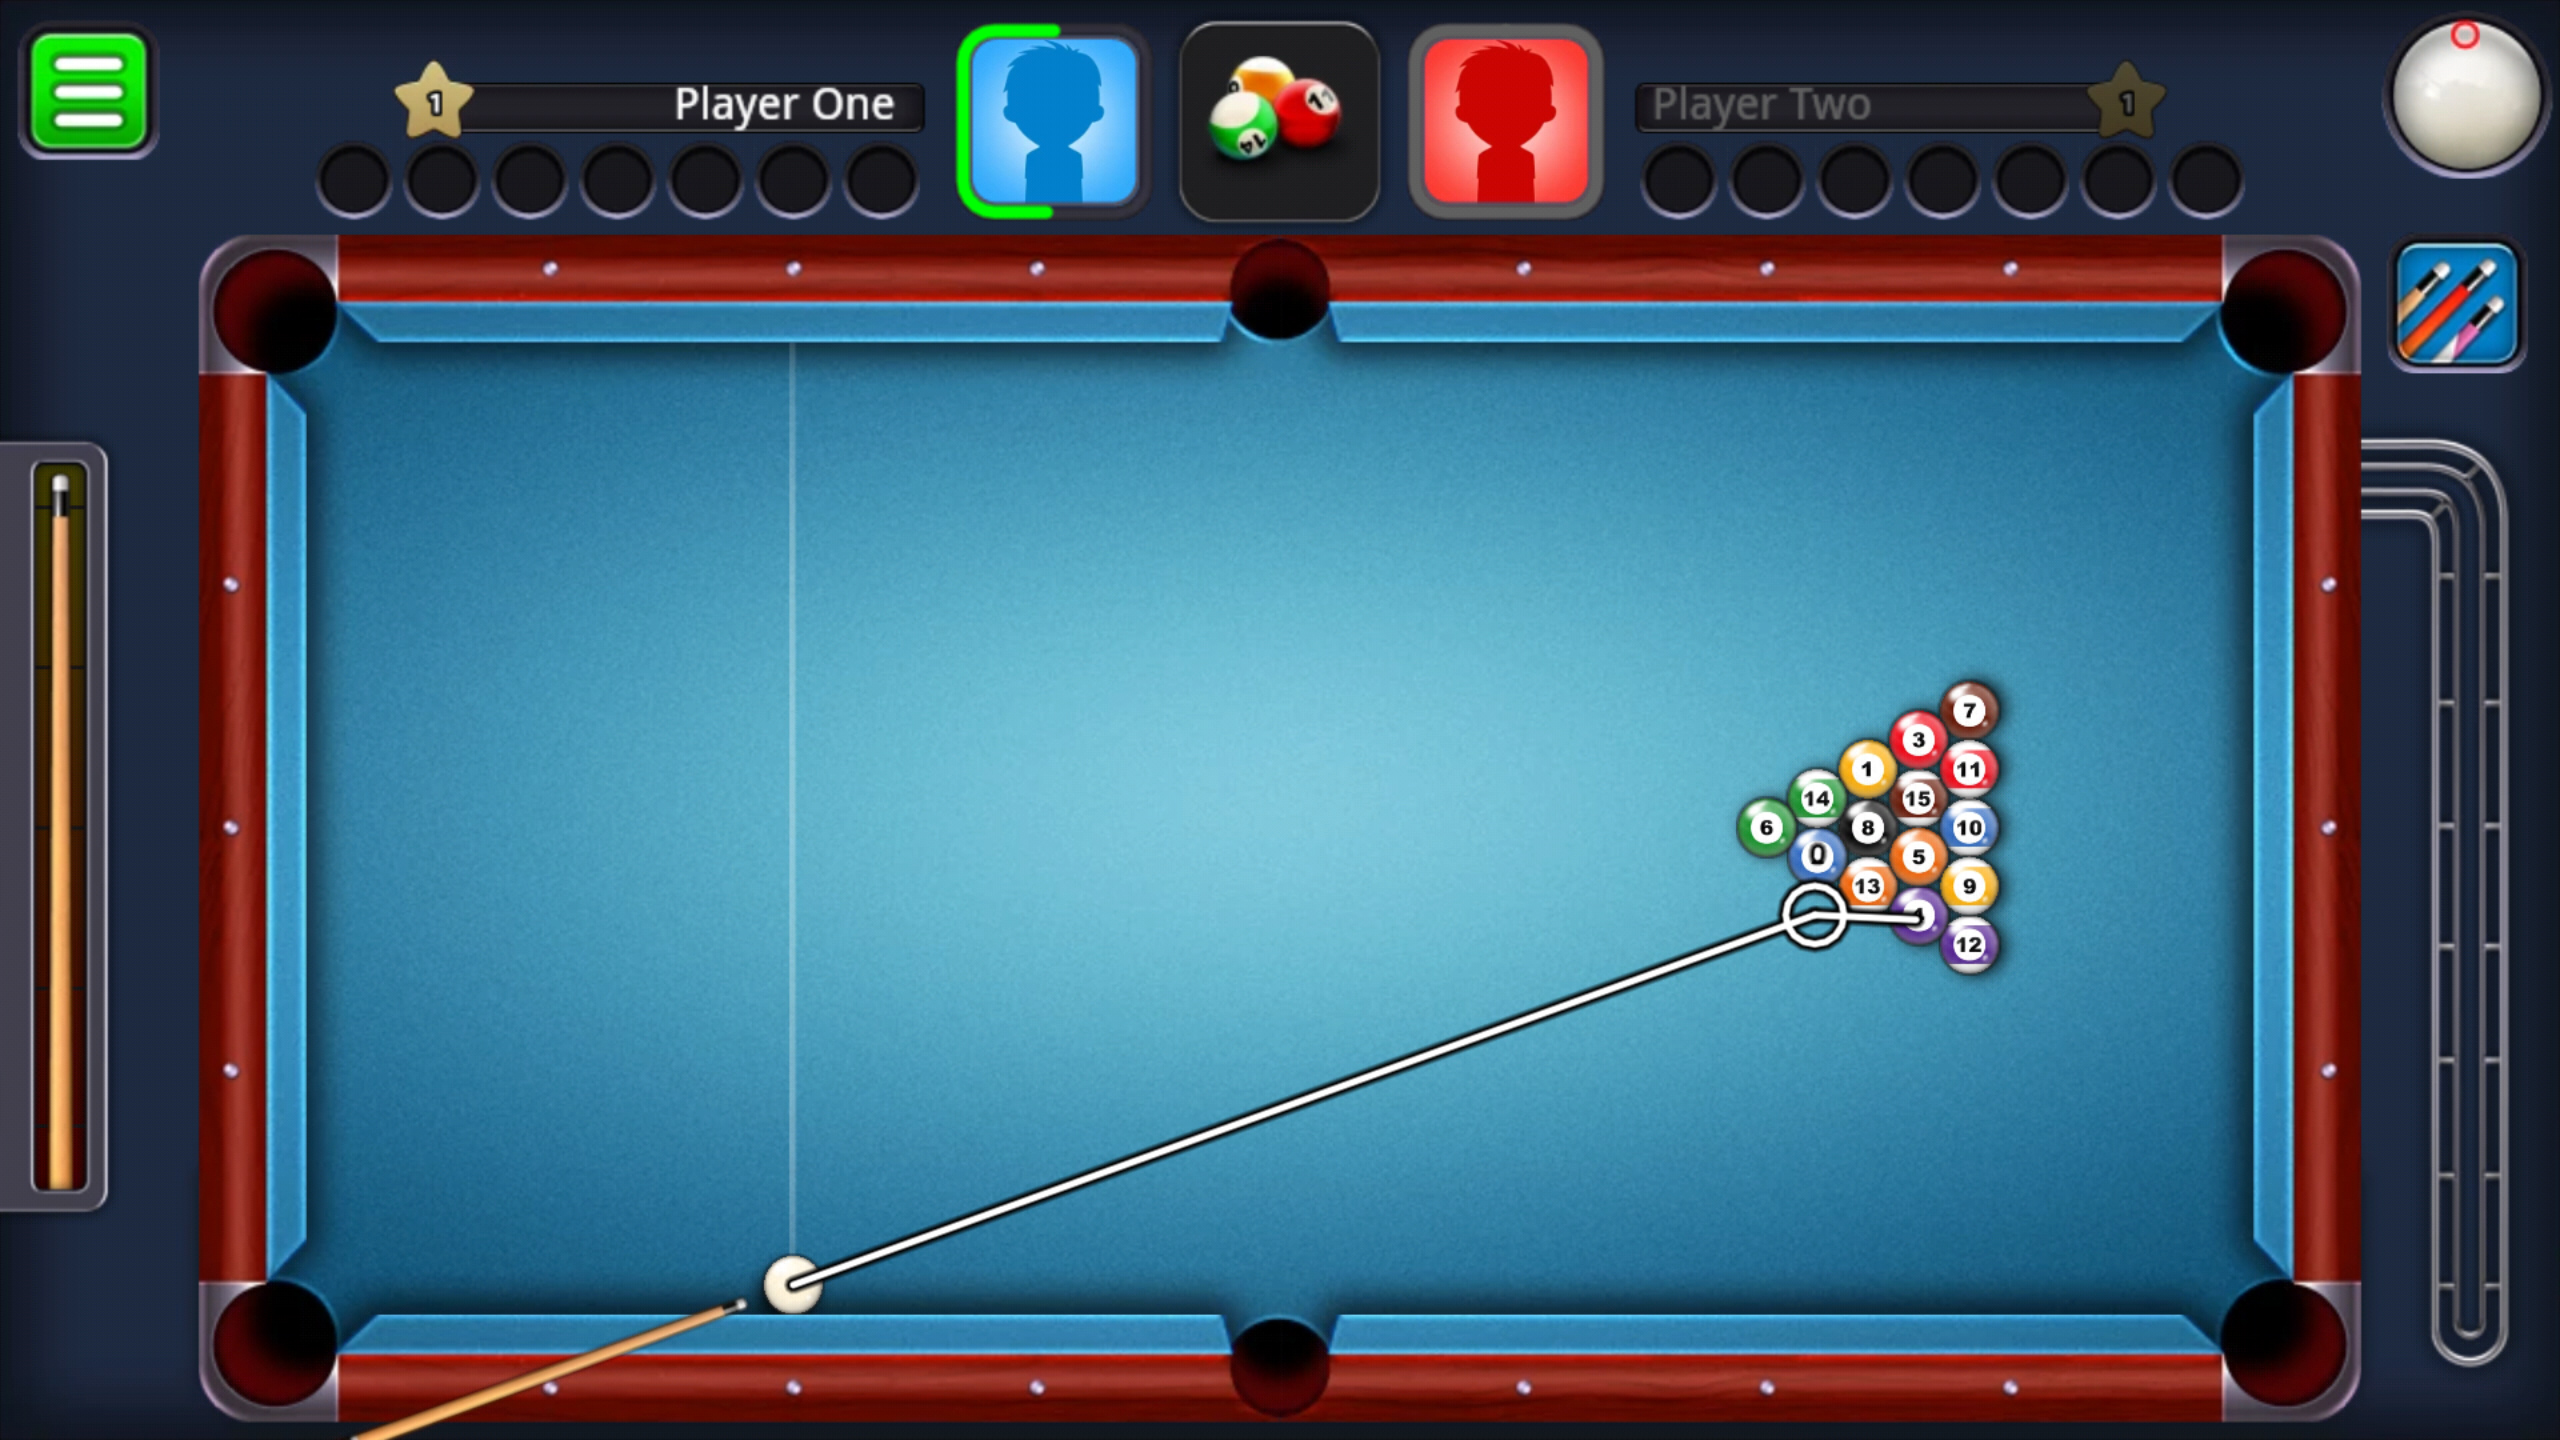 Best Break Shots in 8 Ball Pool